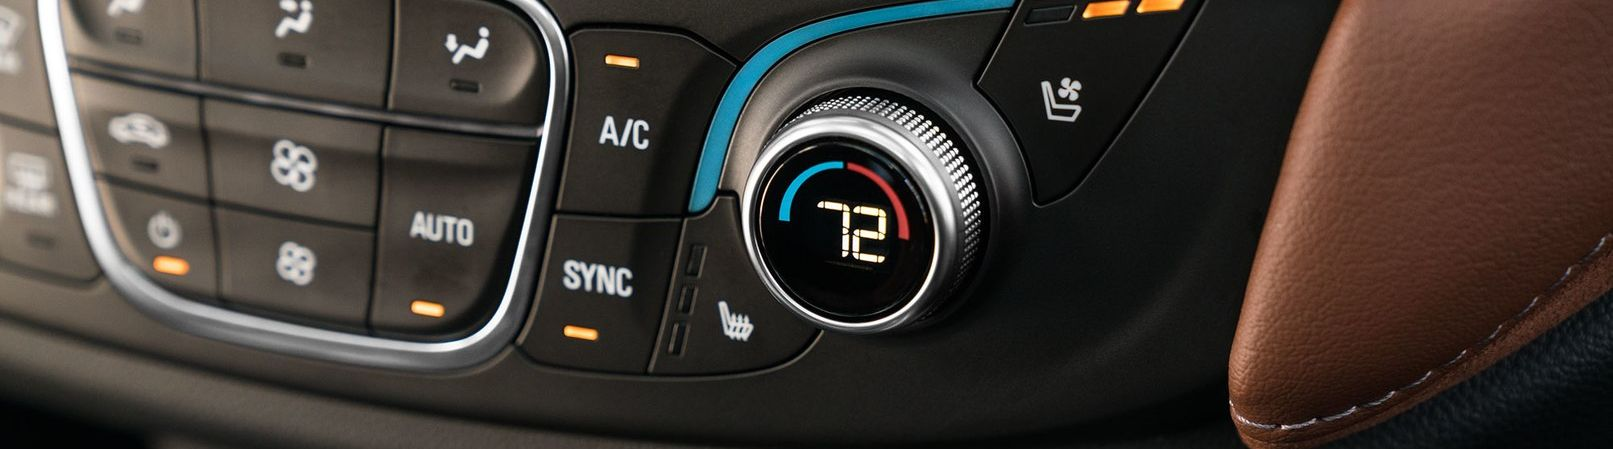 Climate Control in the 2019 Traverse